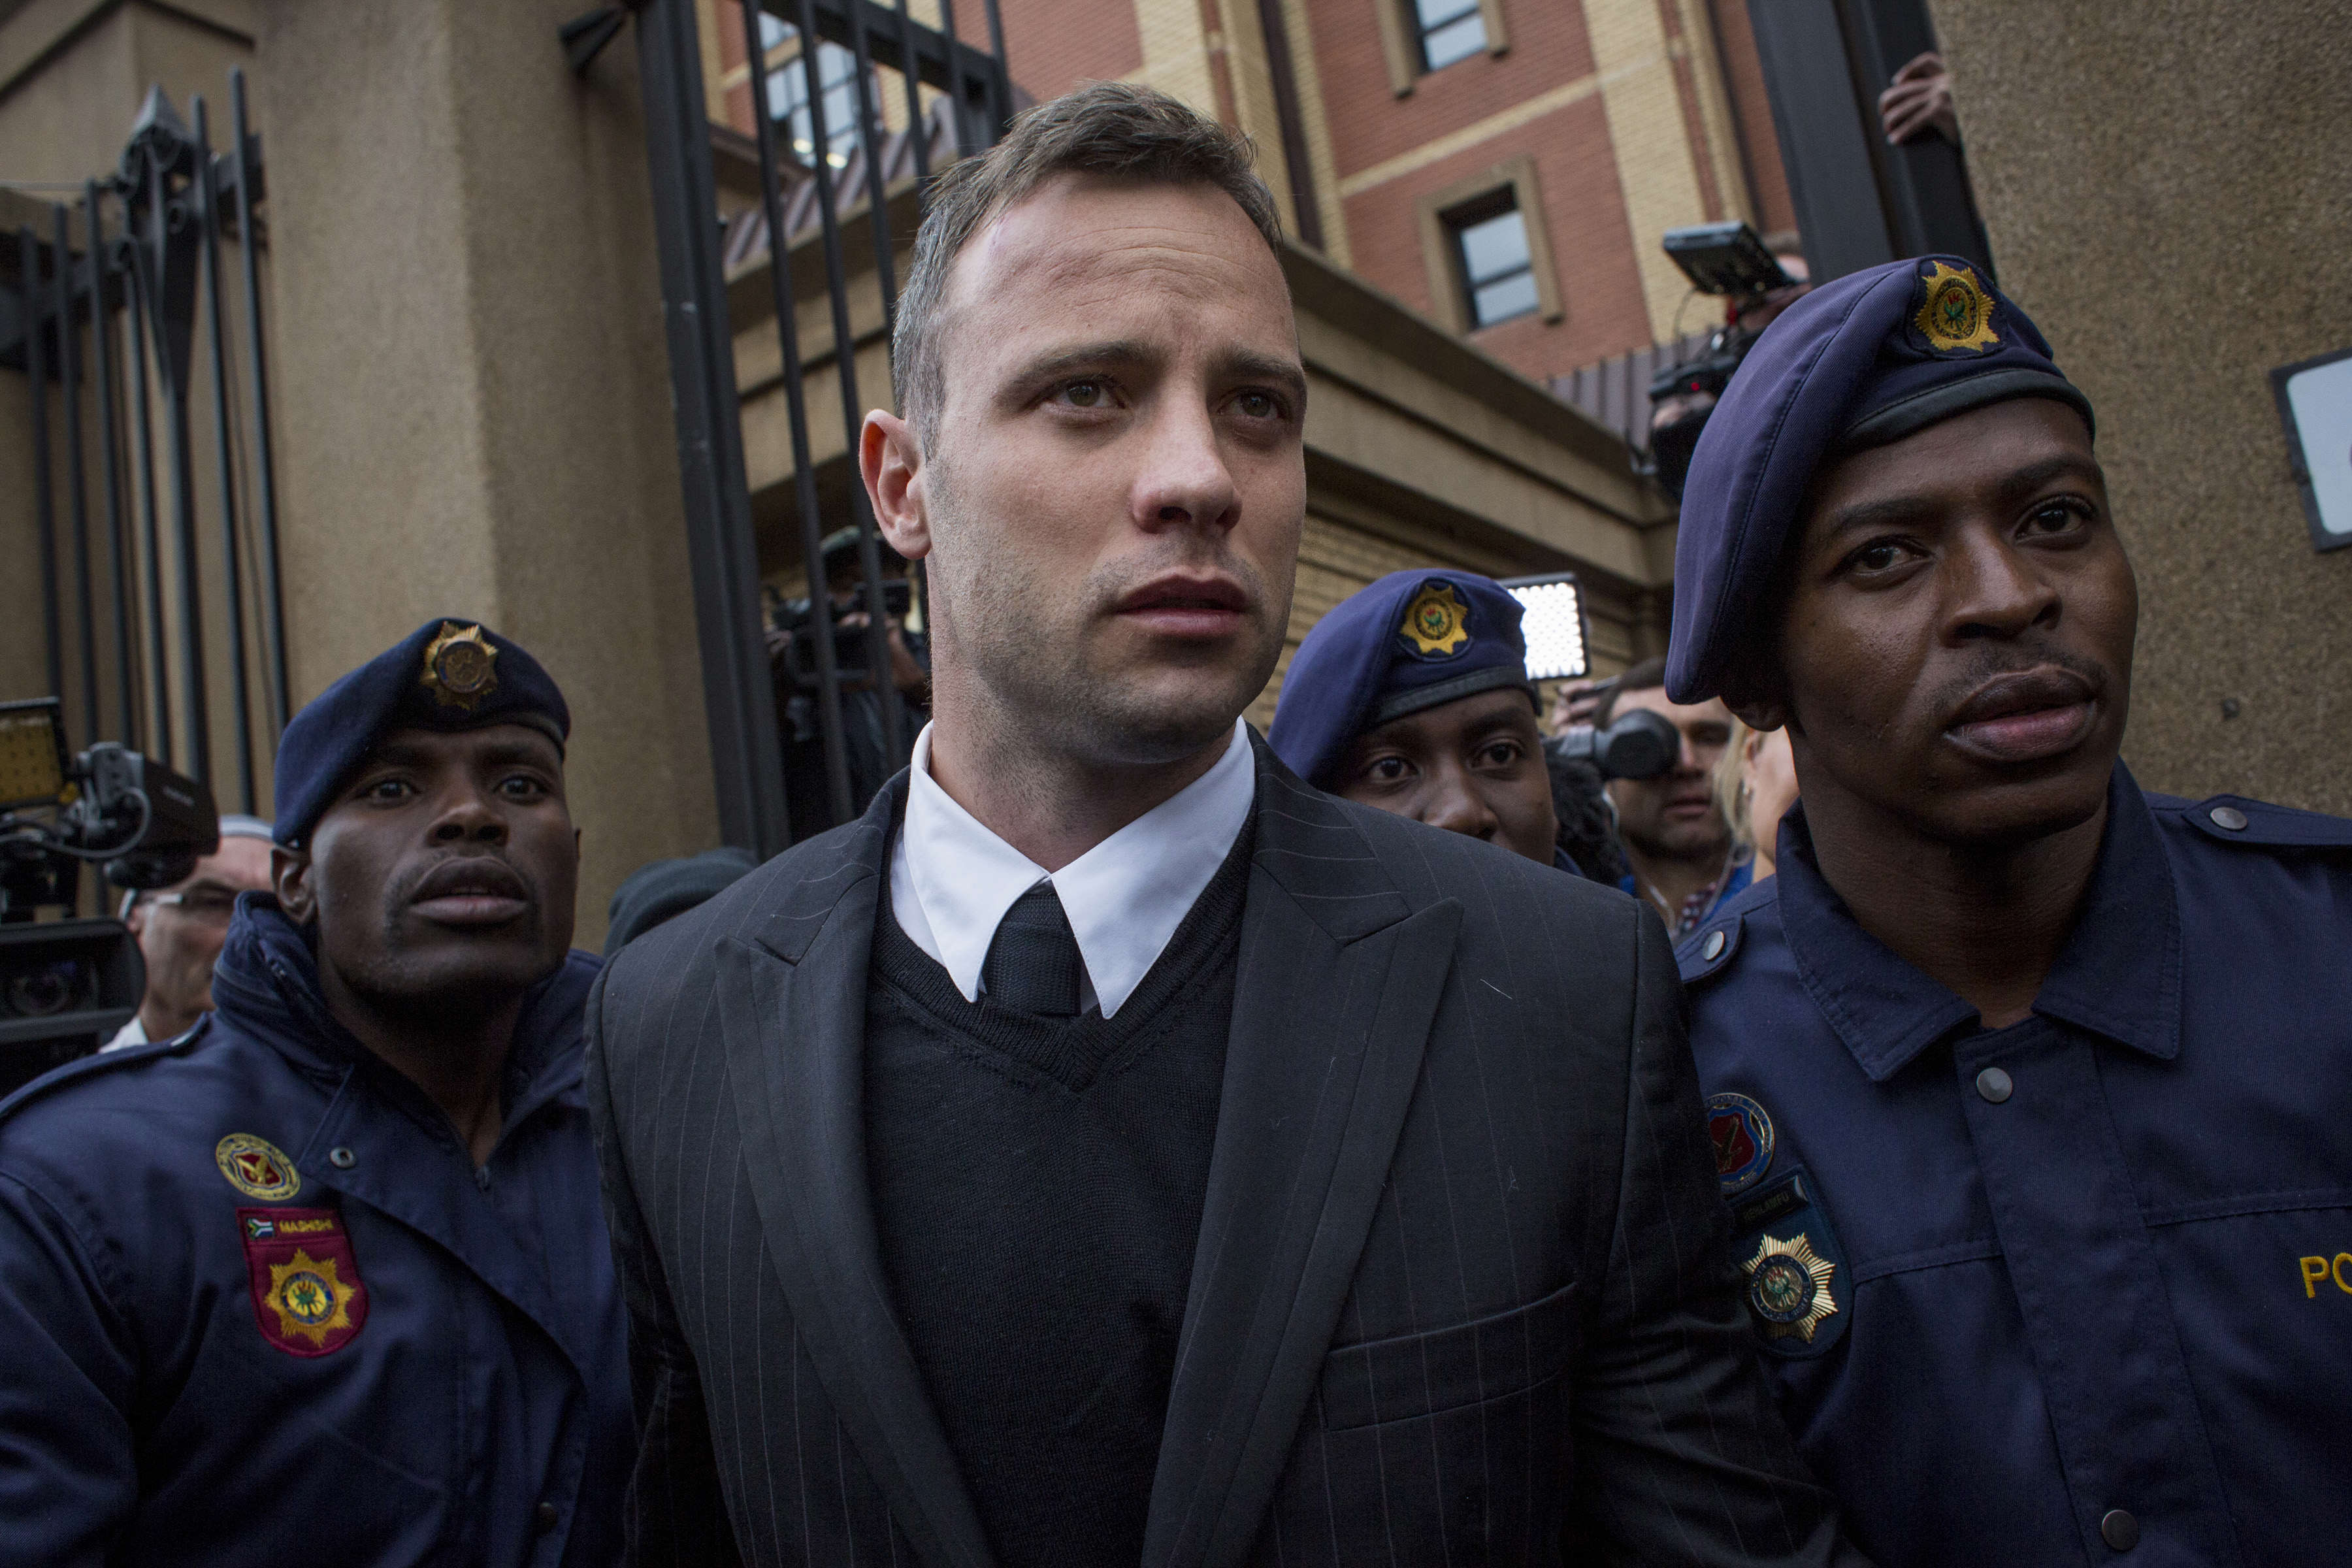 Oscar Pistorius Likely To Receive Shockingly Brief Sentence For Murder GettyImages 540065128